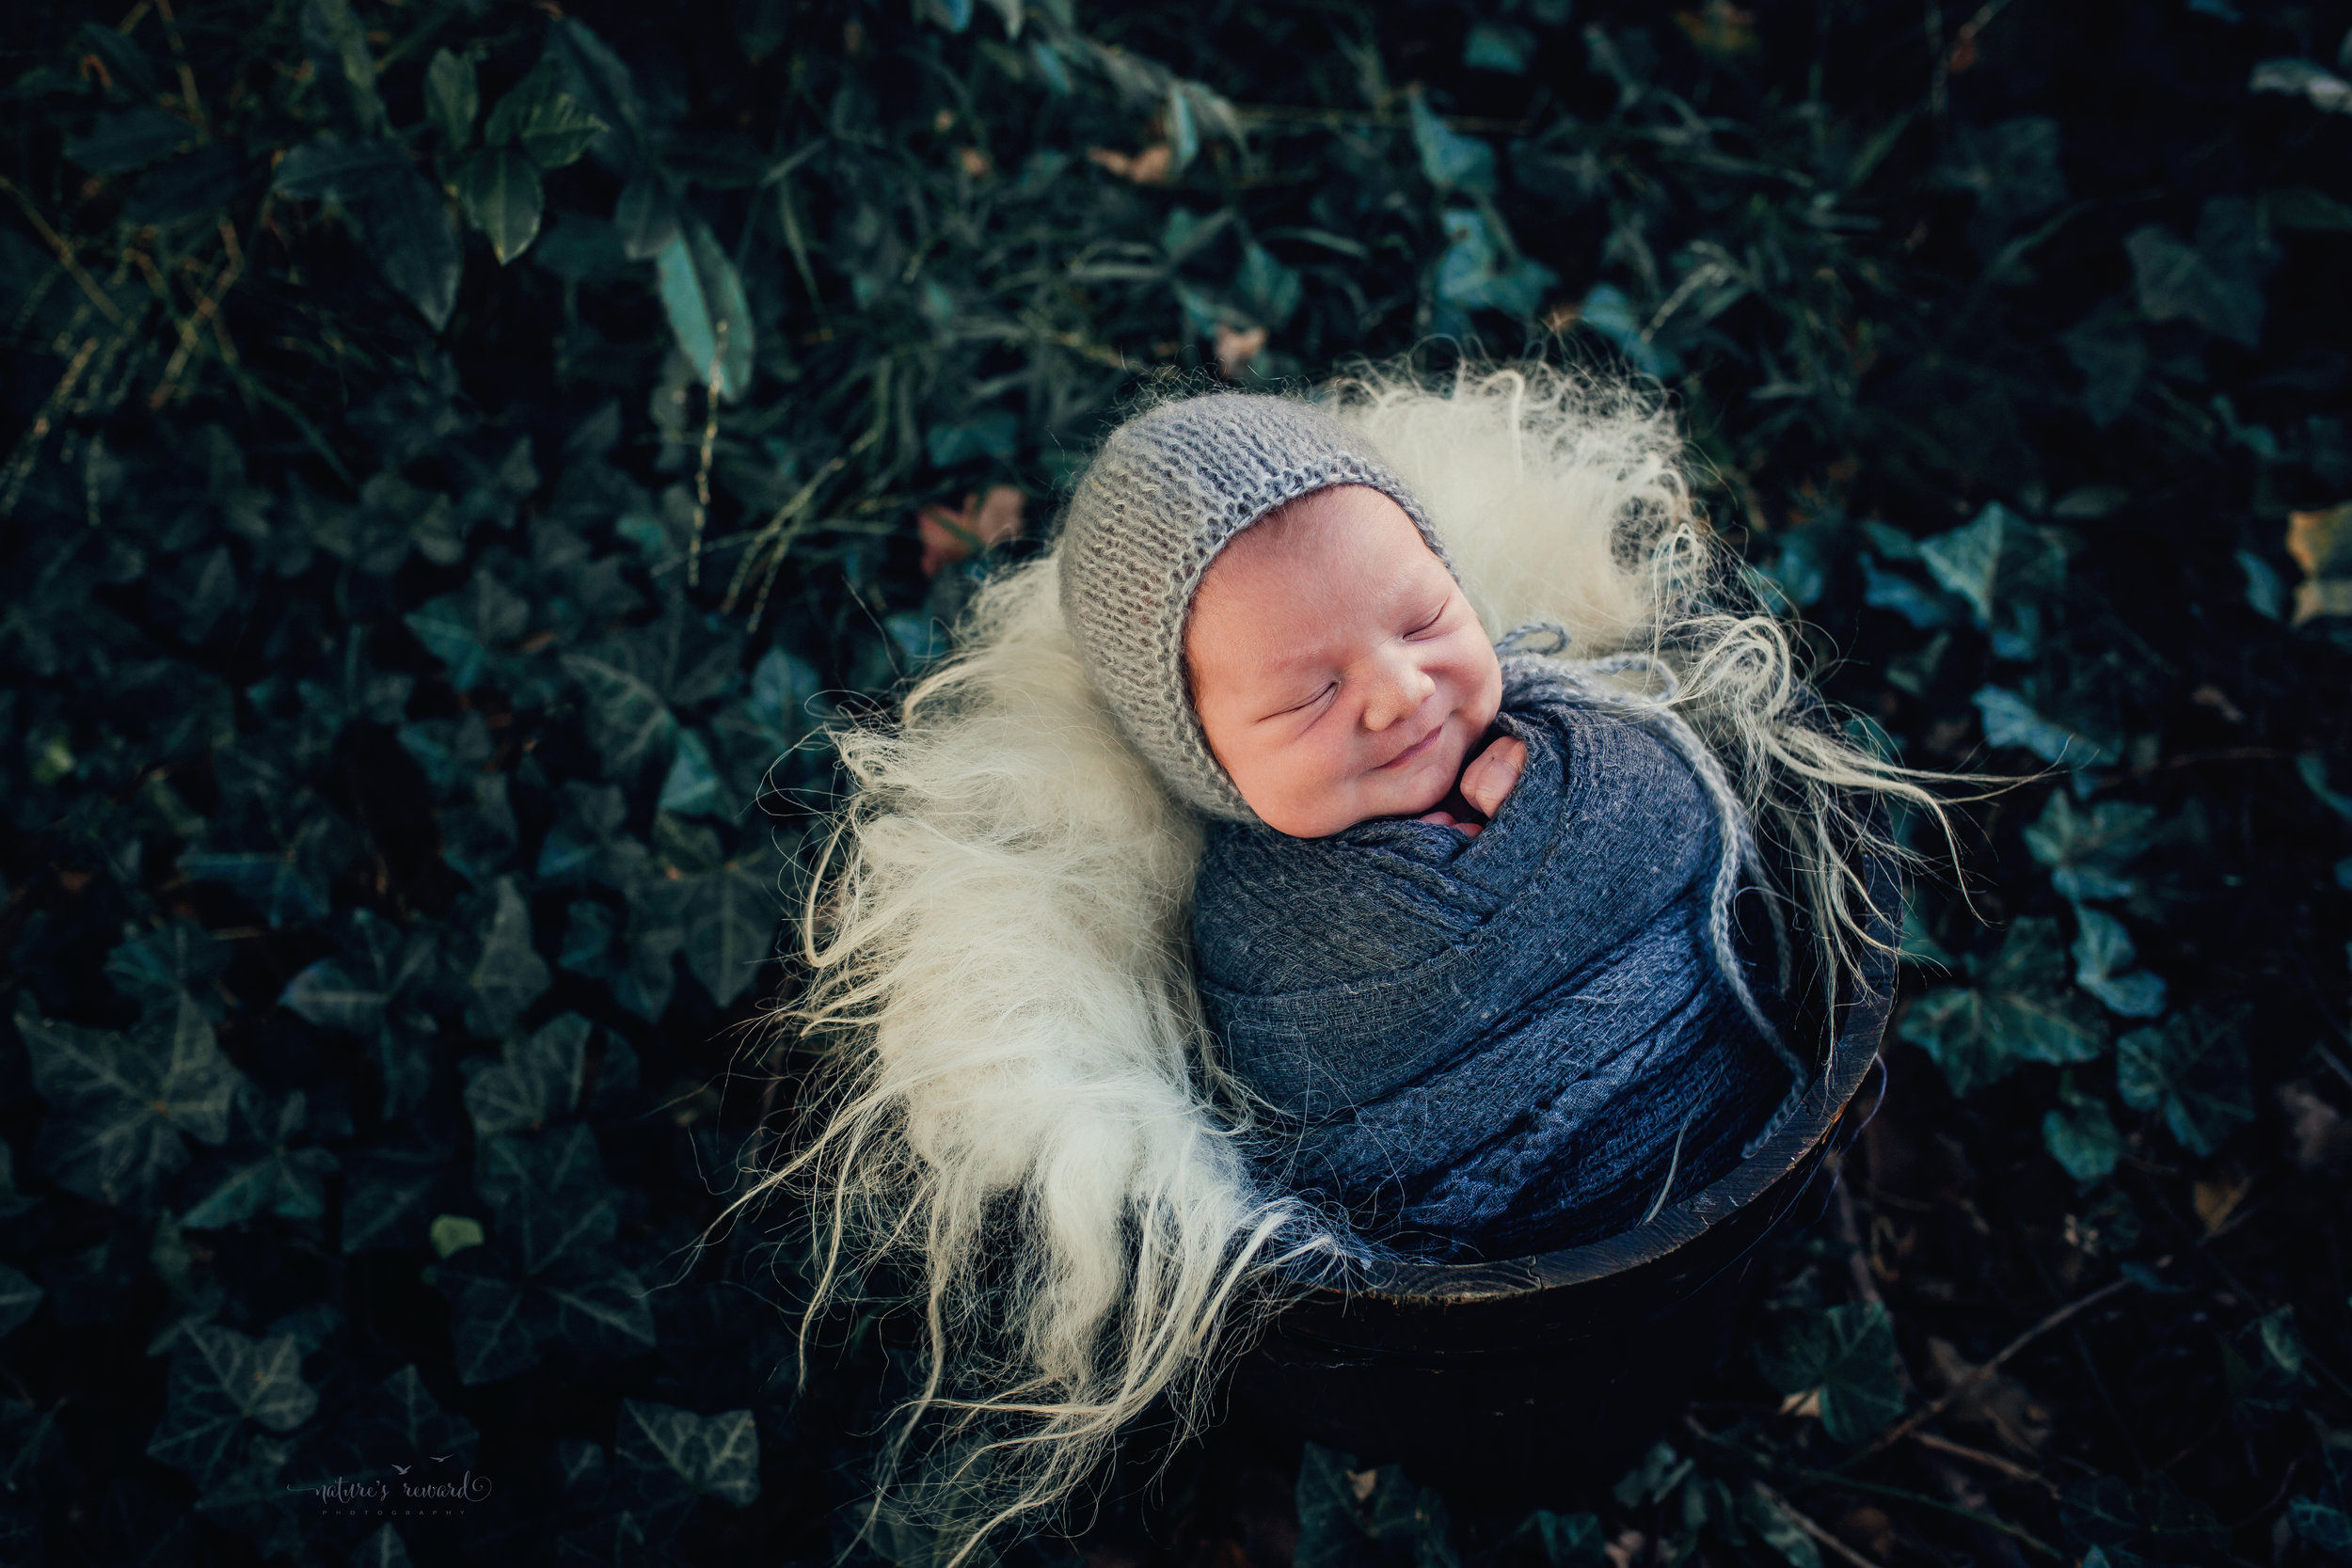 Newborn baby boy swaddled in grey wearing a grey bonnet in a garden of ivy- a portrait by Nature's Reward Photography